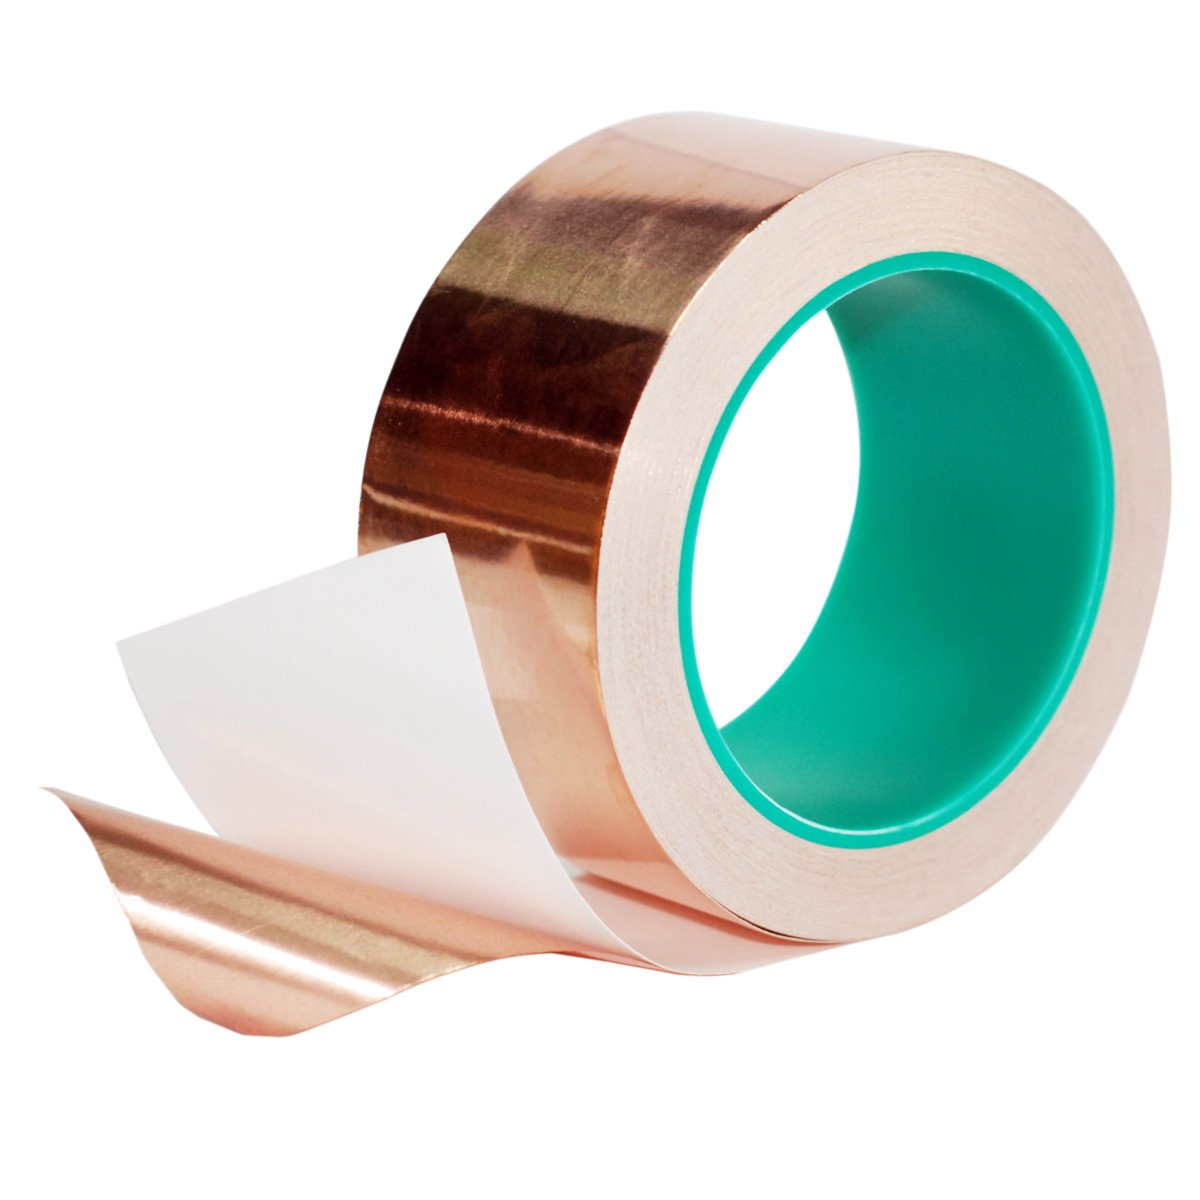 Copper Foil Tape,DIKOO Double-Sided Conductive Adhesive (2inch X 21.8yards) for EMI Shielding,Slug Repellent,Electrical Repairs,Stained Glass,Art Work,Soldering,Grounding Paper Circuits,Crafts